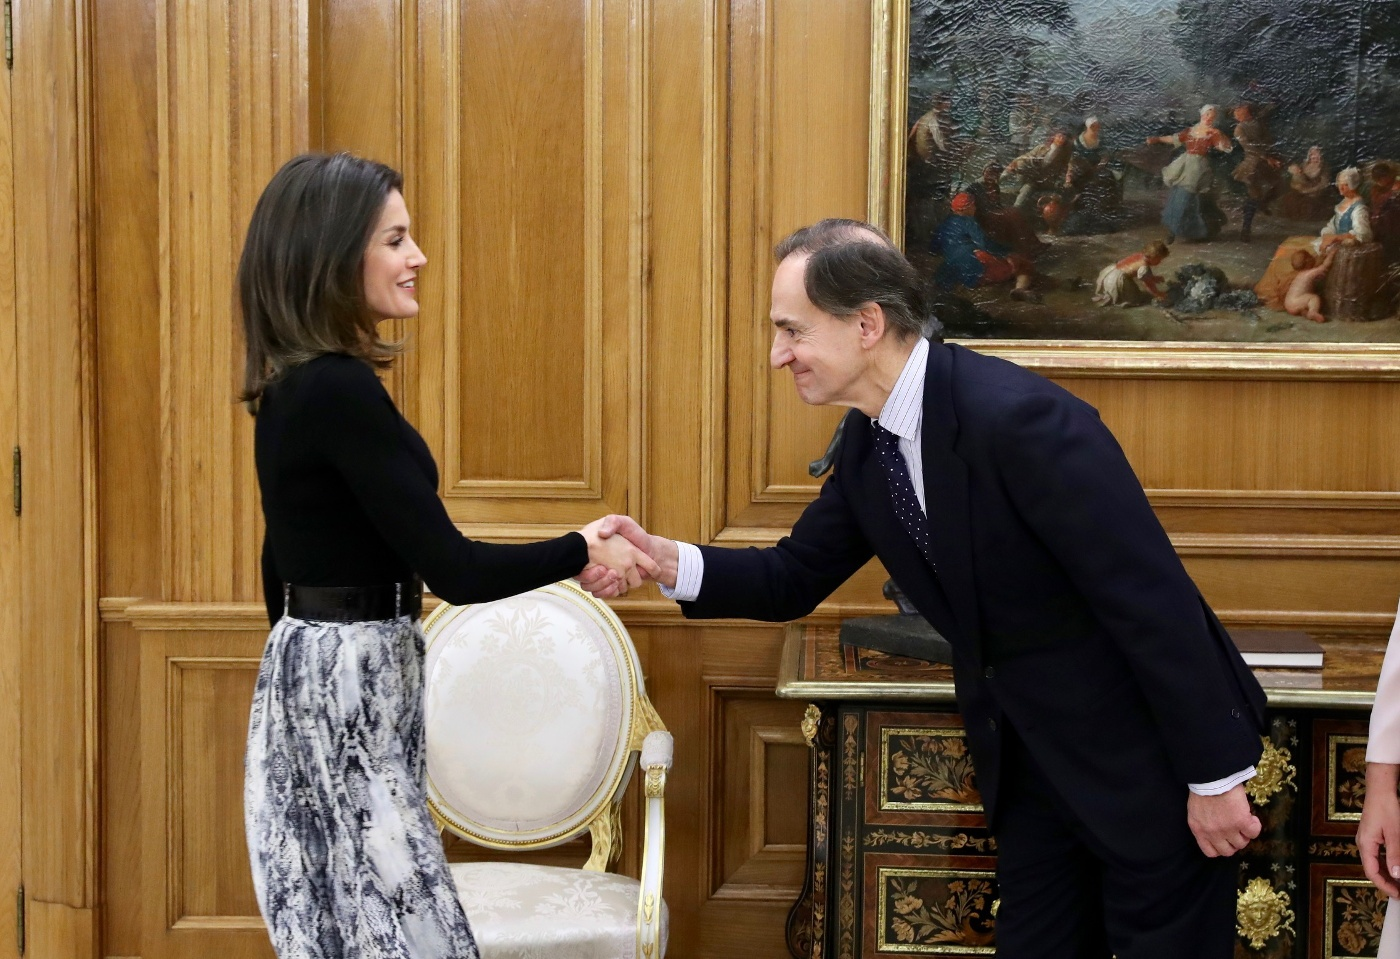 Queen Letizia of Spain received audience at the Royal Palace in Madrid